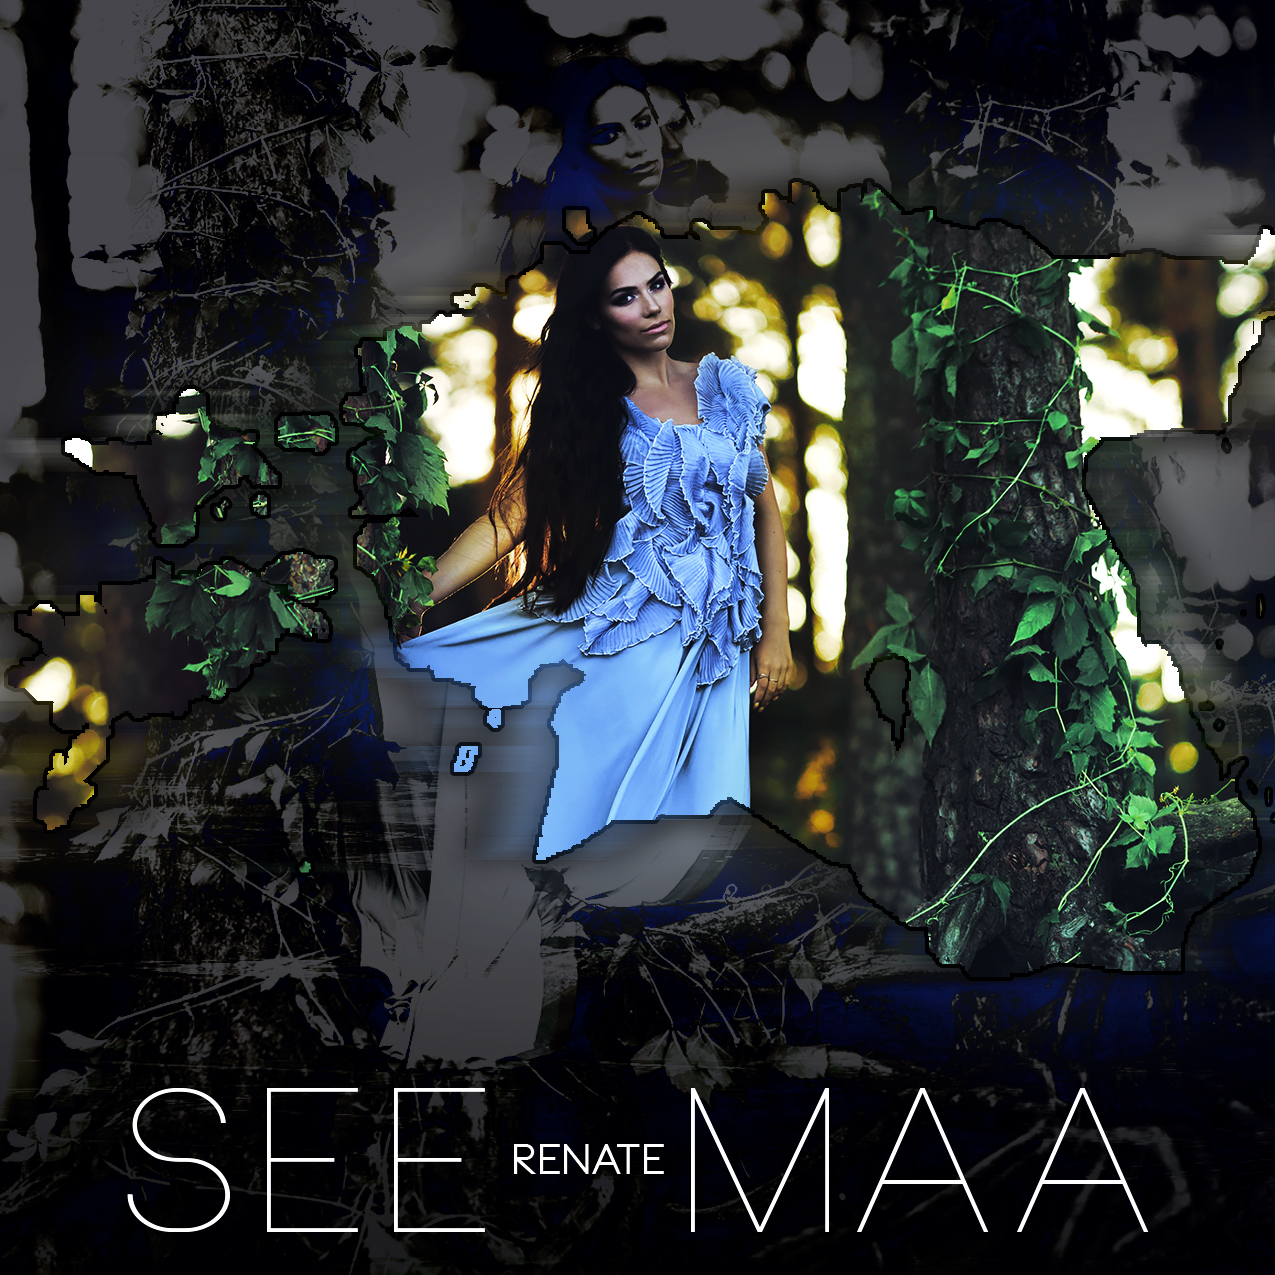 see-maa---itunes-cover